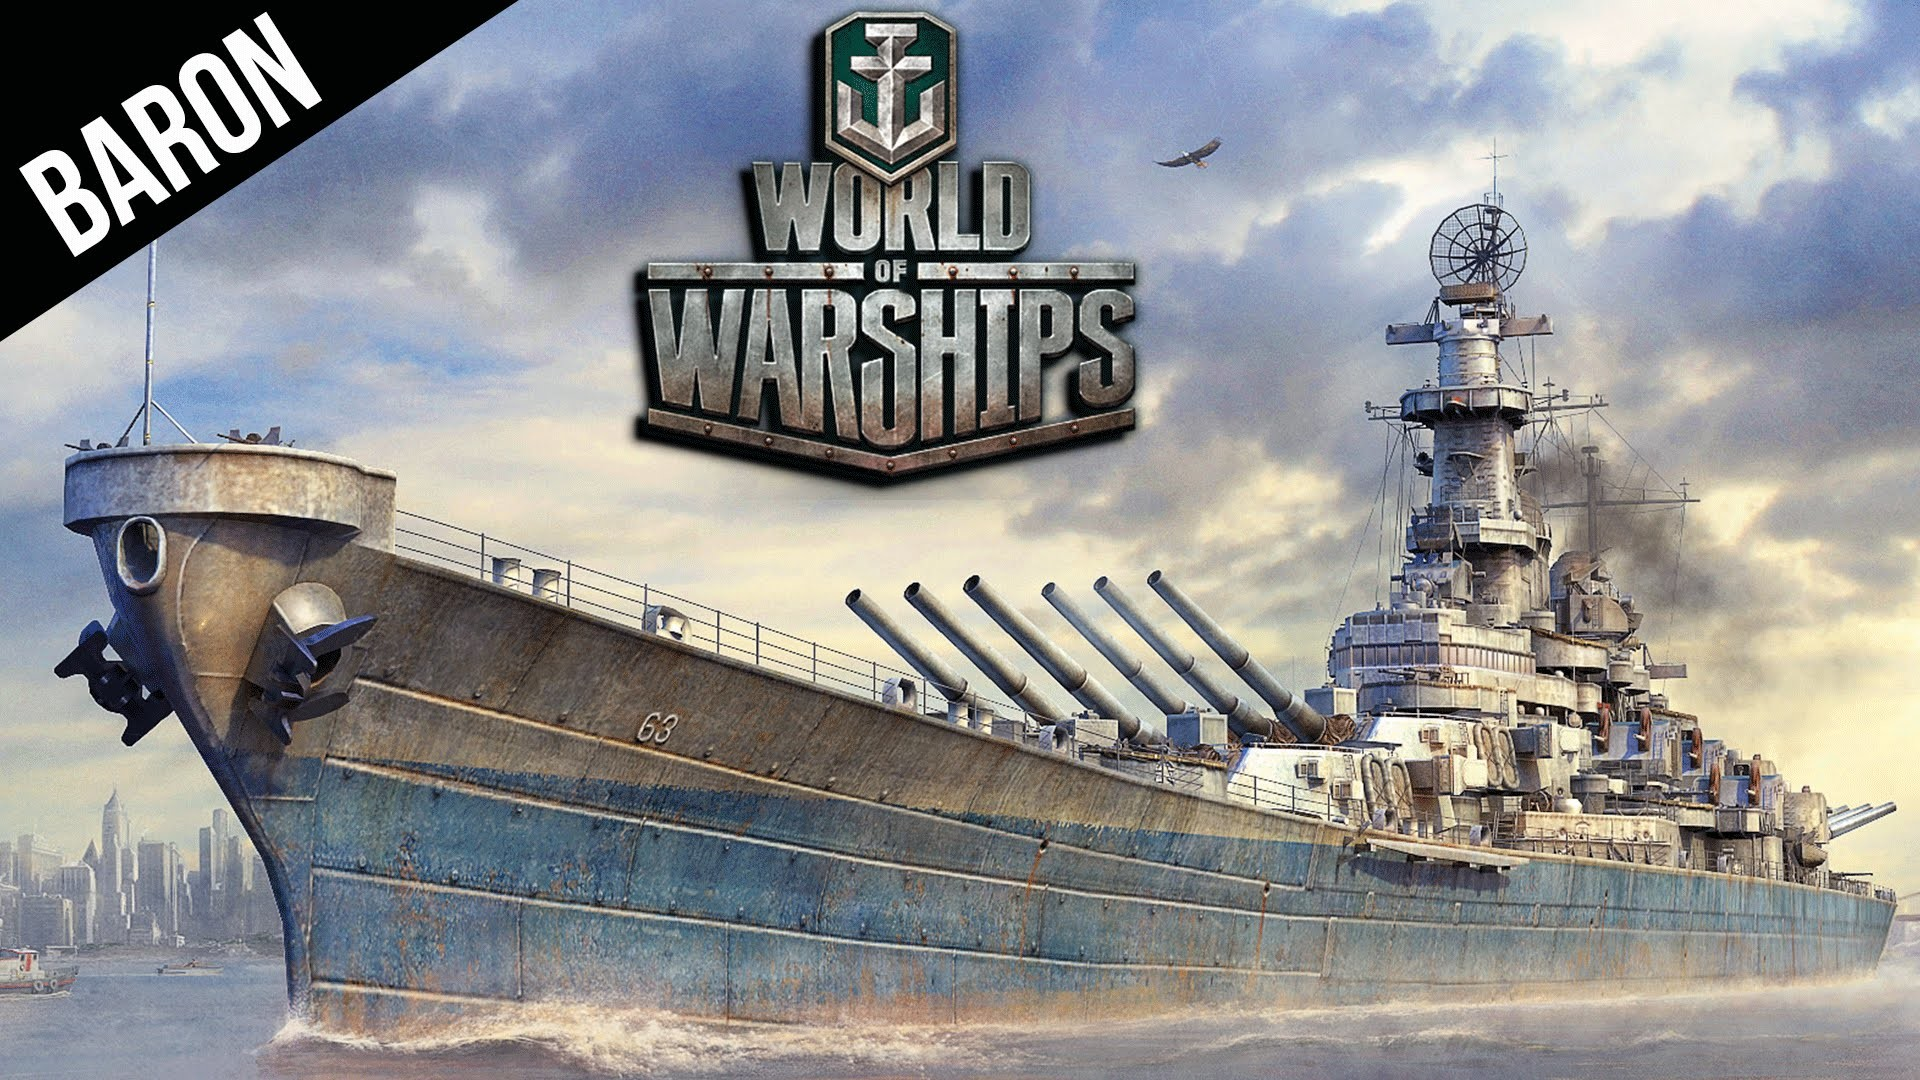 World of Warships Wallpaper 1920x1080 (83+ images)